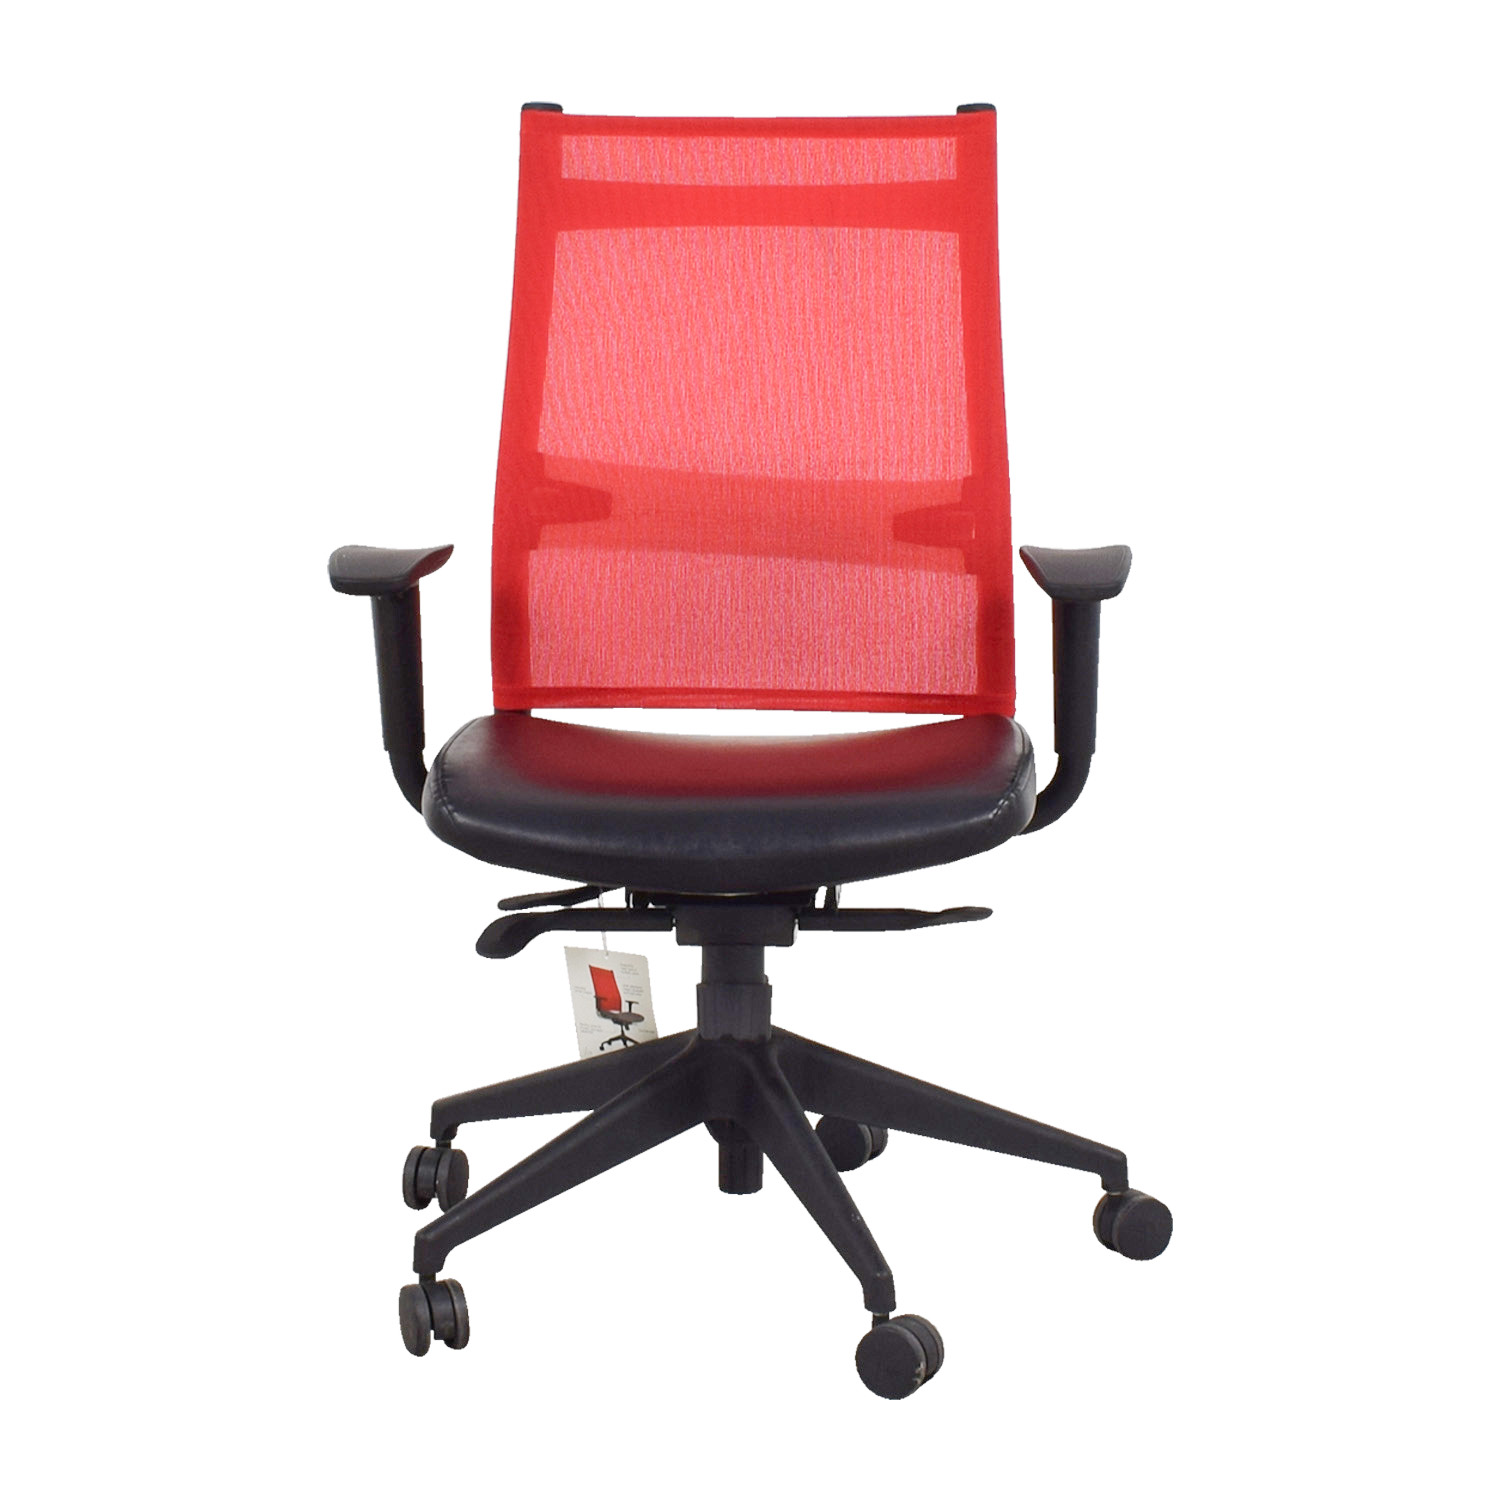 SitOnIt SitOnIt Red Office Chair nyc